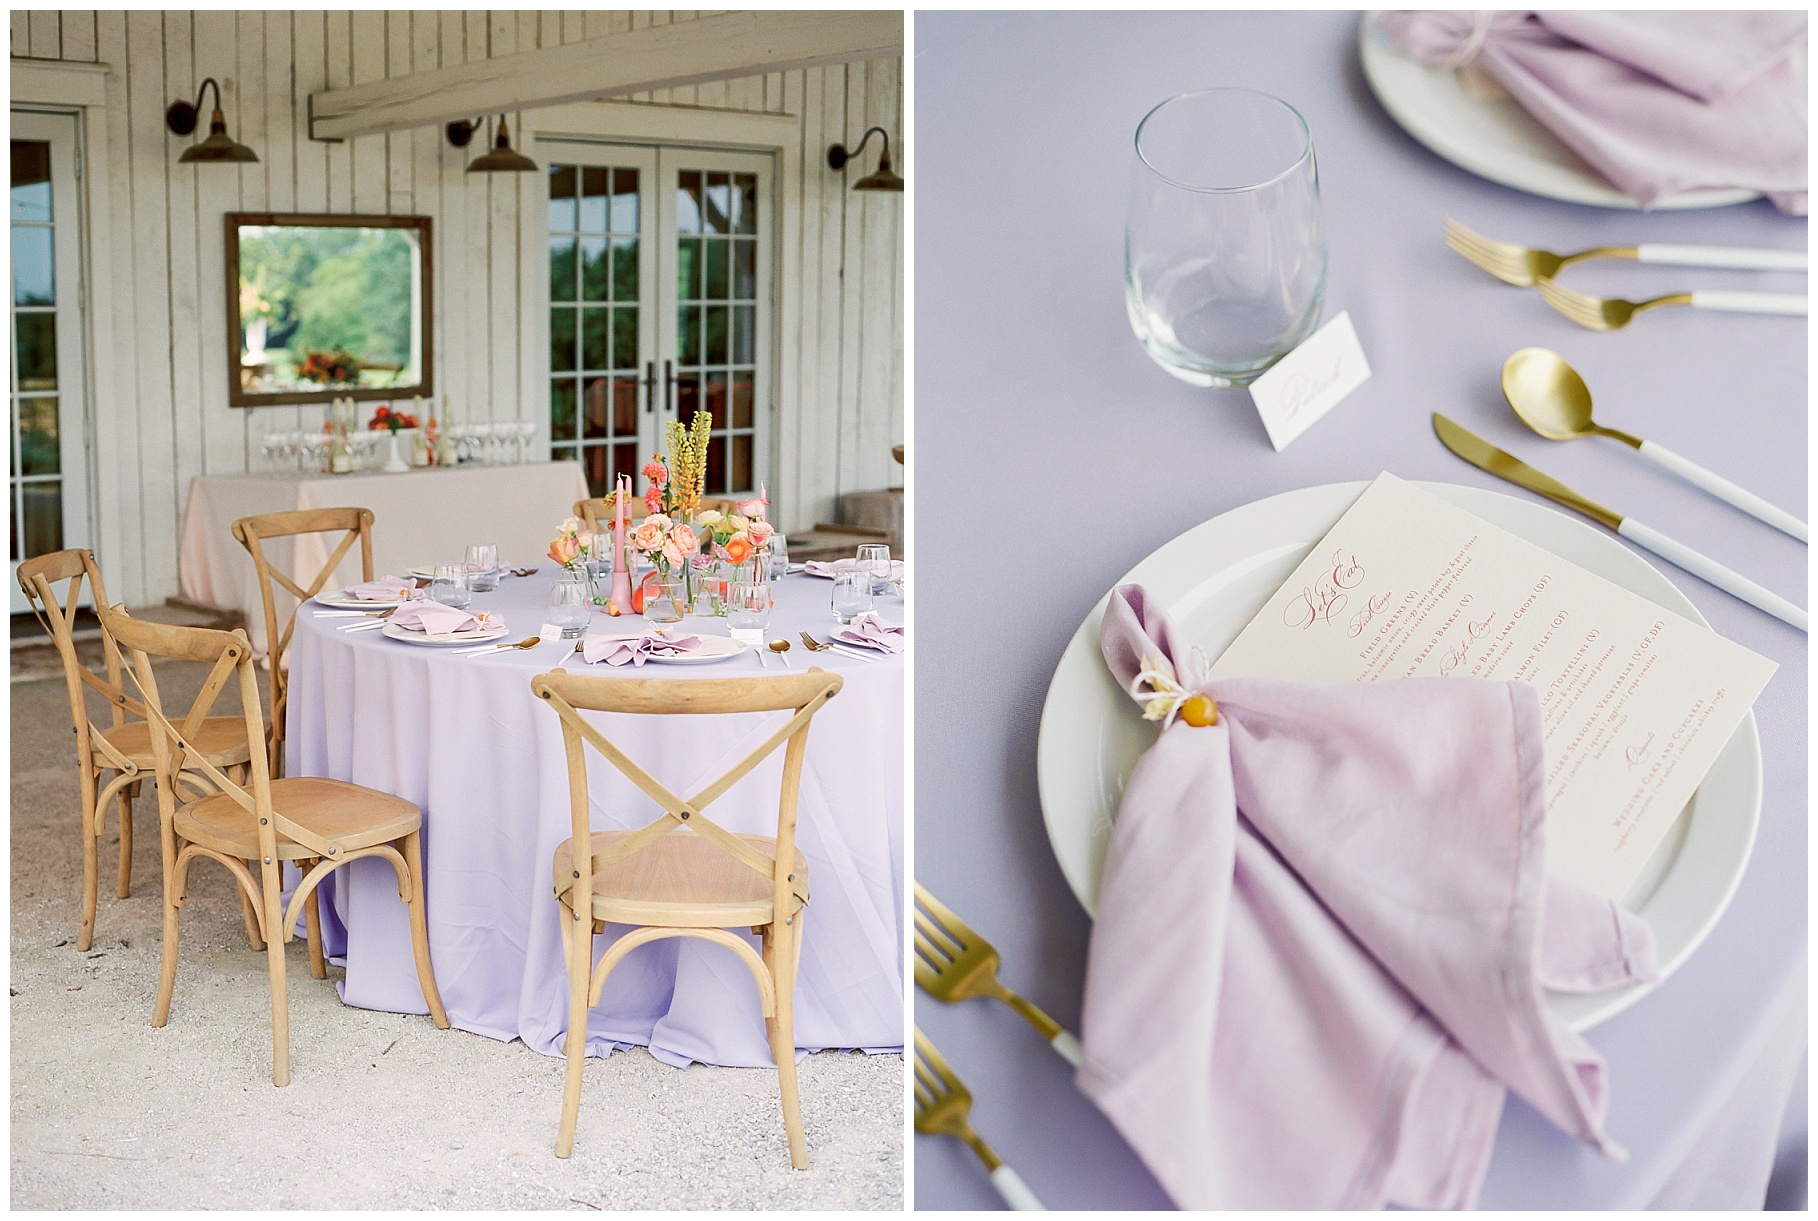 Late Summer Wedding With Pastel Toned Soiree at Blue Bell Farm by Kelsi Kliethermes Photography Best Columbia Missouri Wedding Photographer_0072.jpg